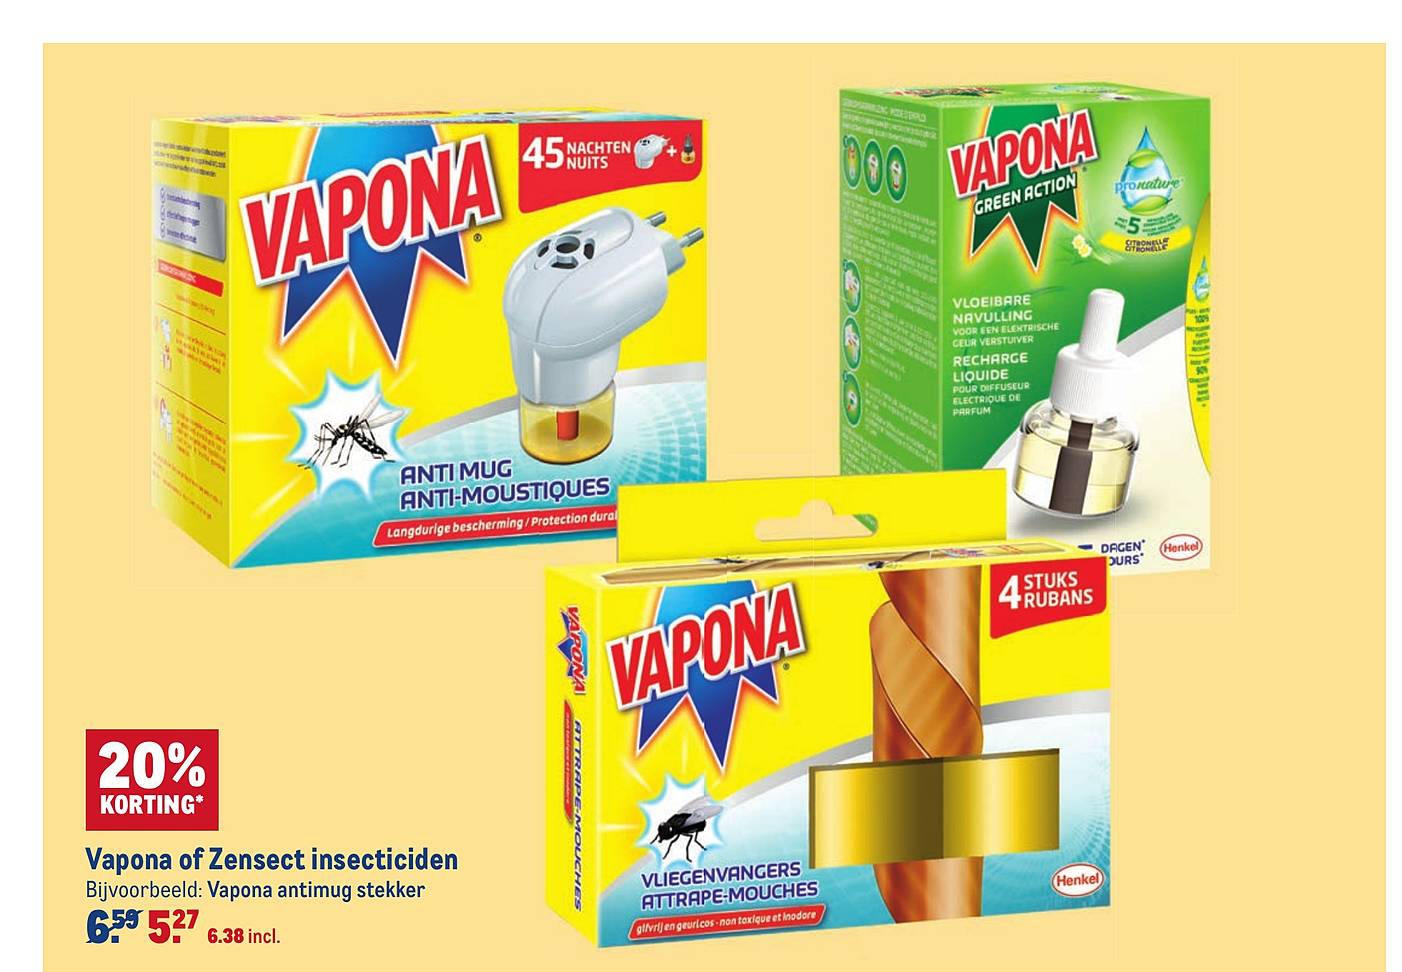 Makro Vapona Of Zensect Insecticiden 20% Korting